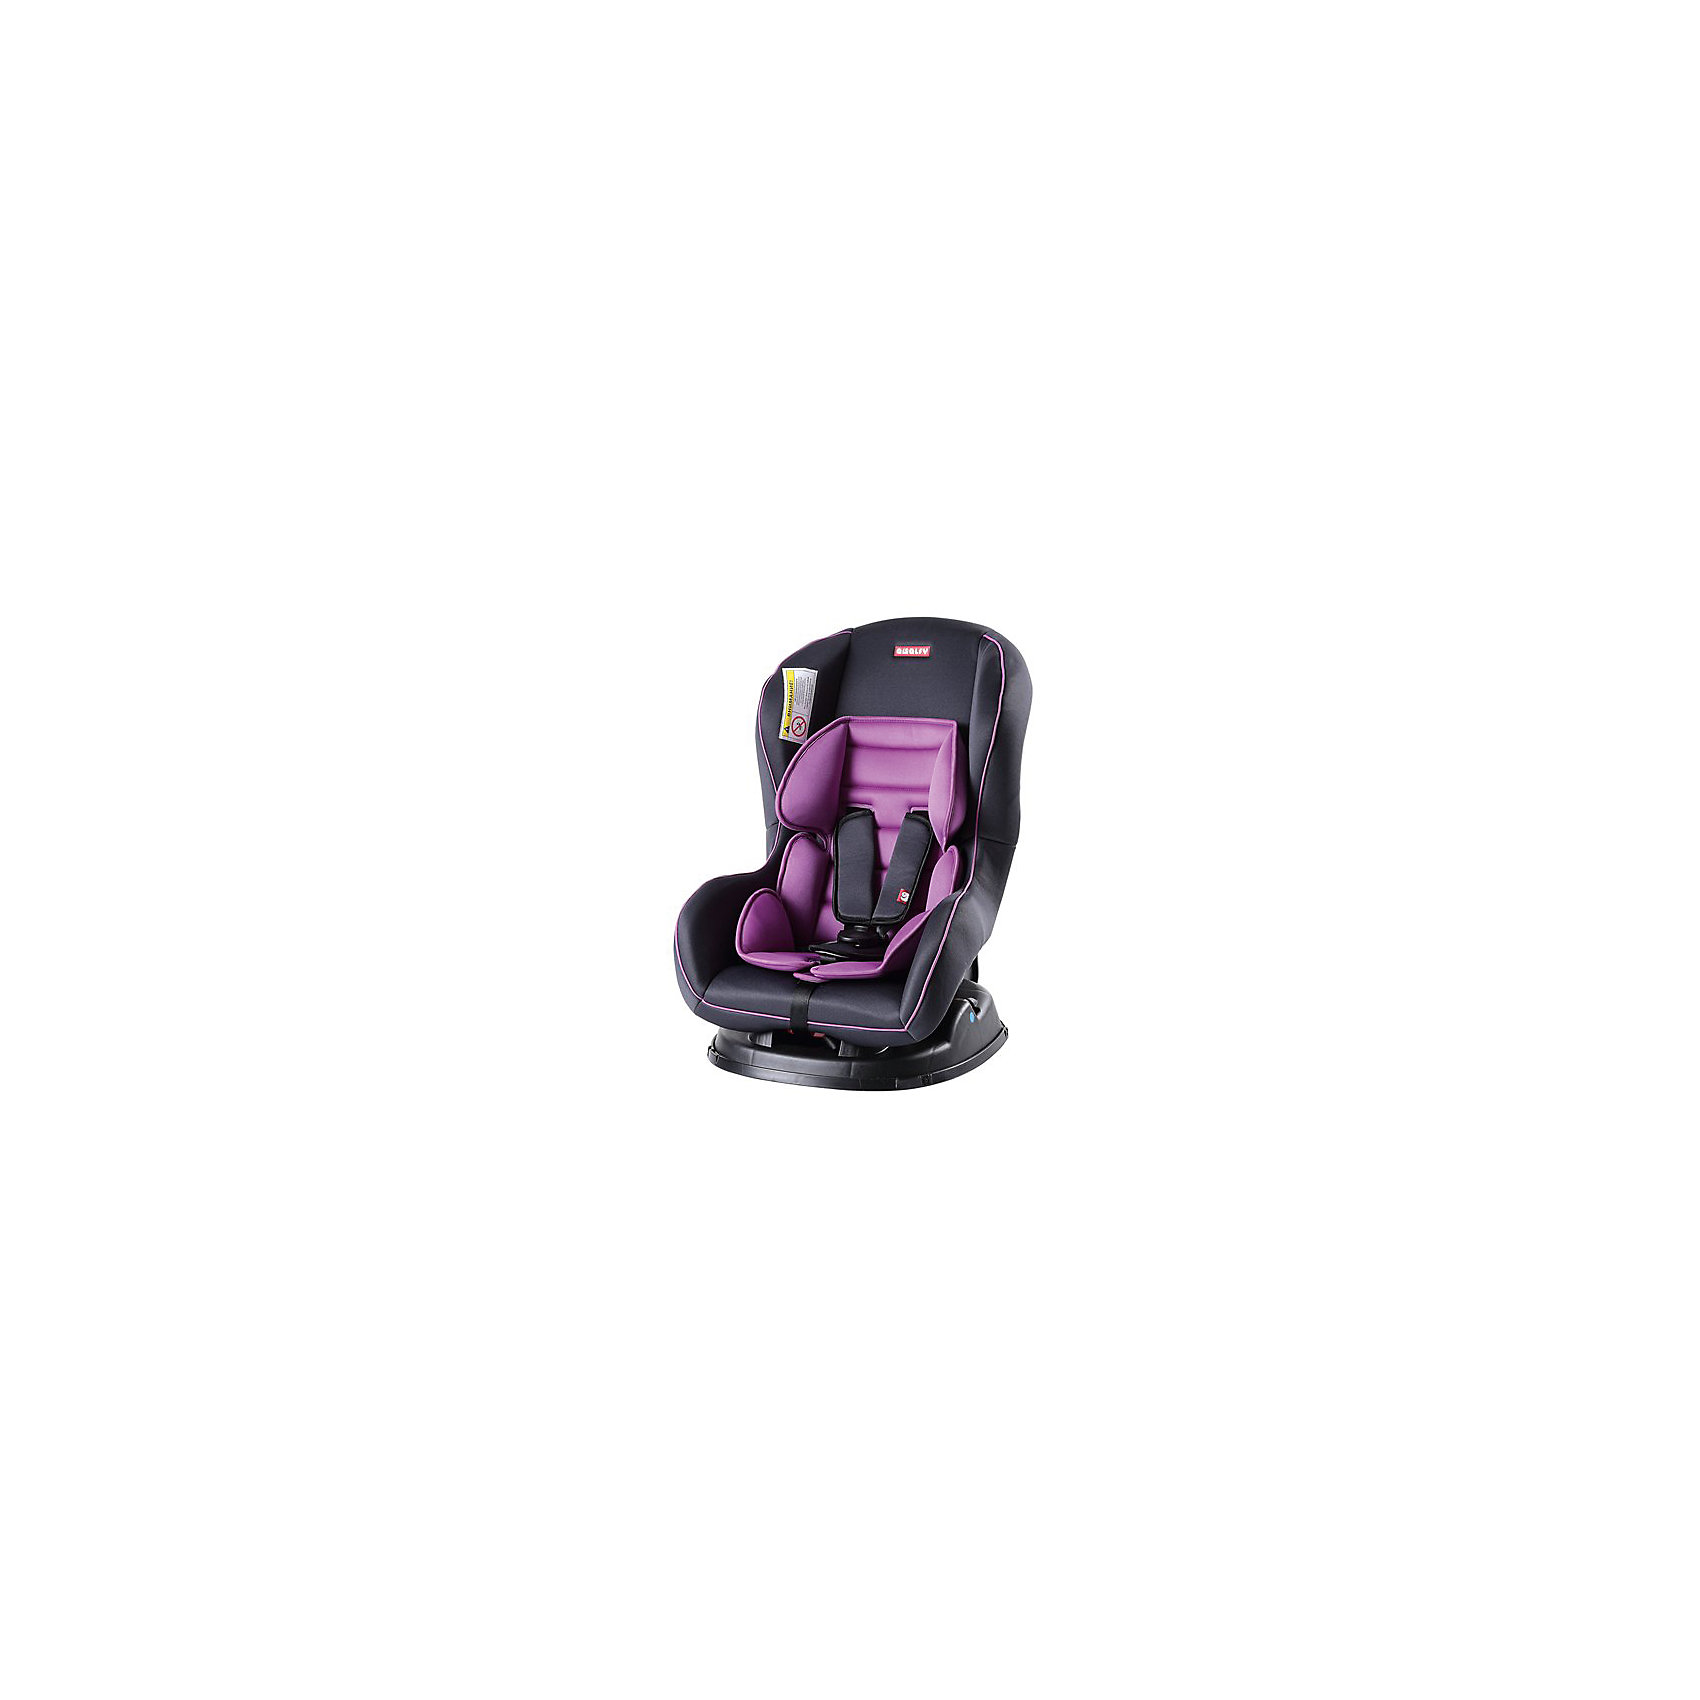 - Автокресло НB-383, 0-18 кг, Amalfy, черный happy baby amalfy hb 383 black